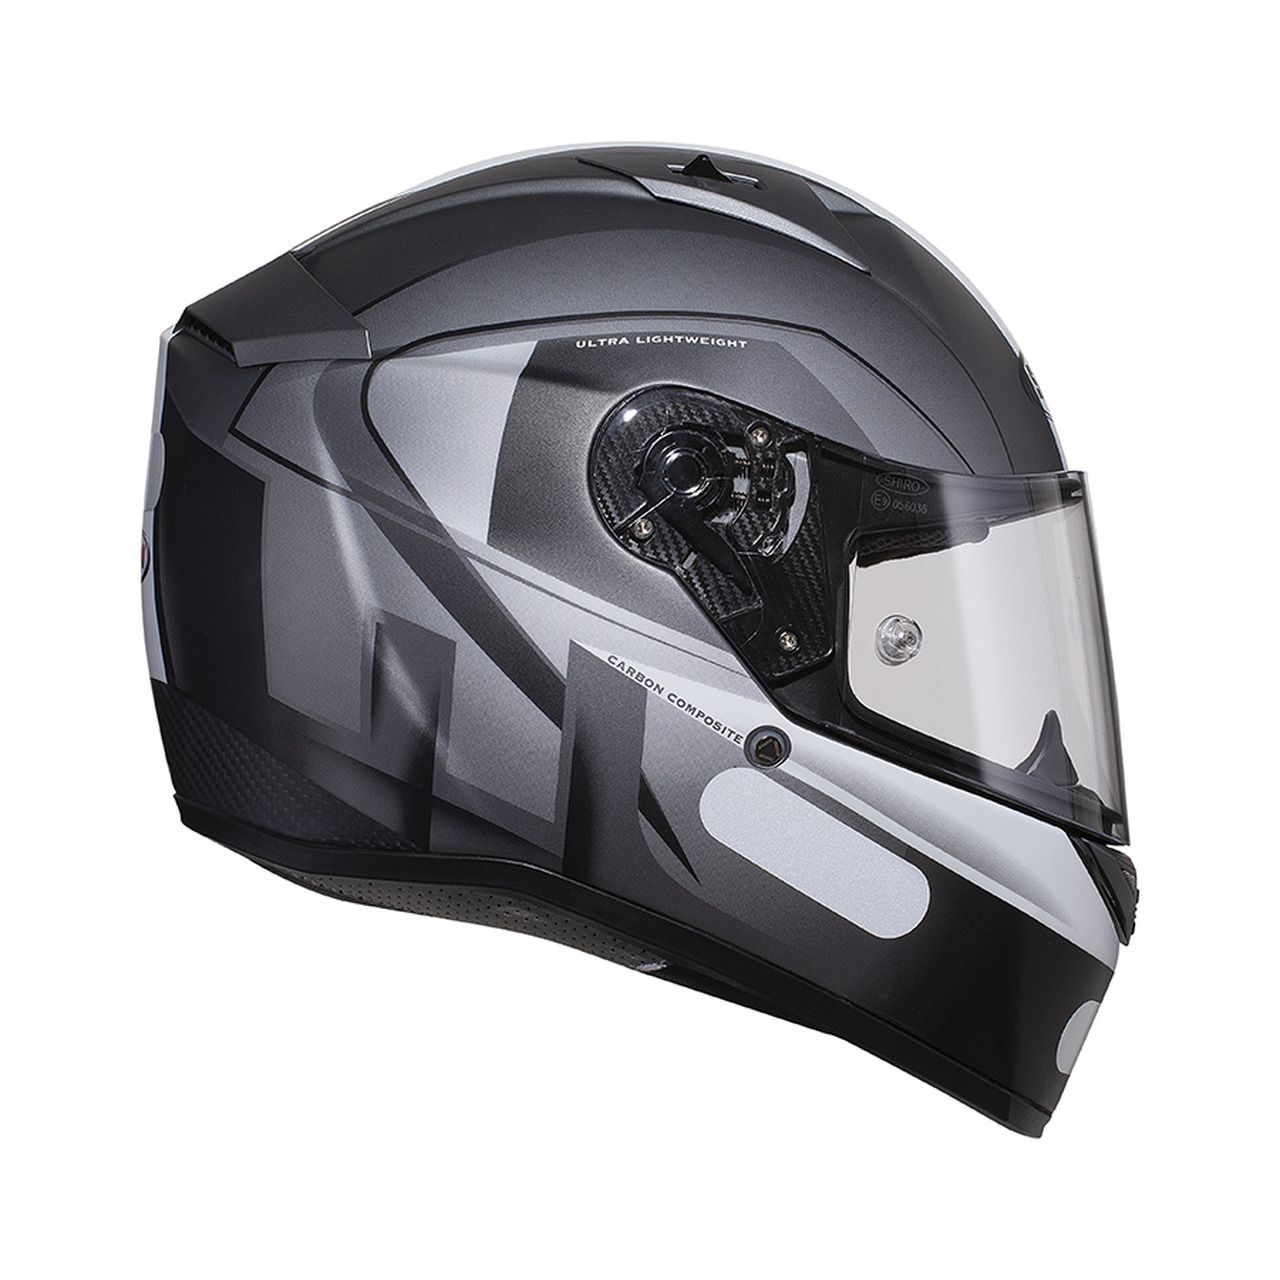 Capacete Shiro Speed Integral Racing Tricomposto SH-336 Raiser Cinza